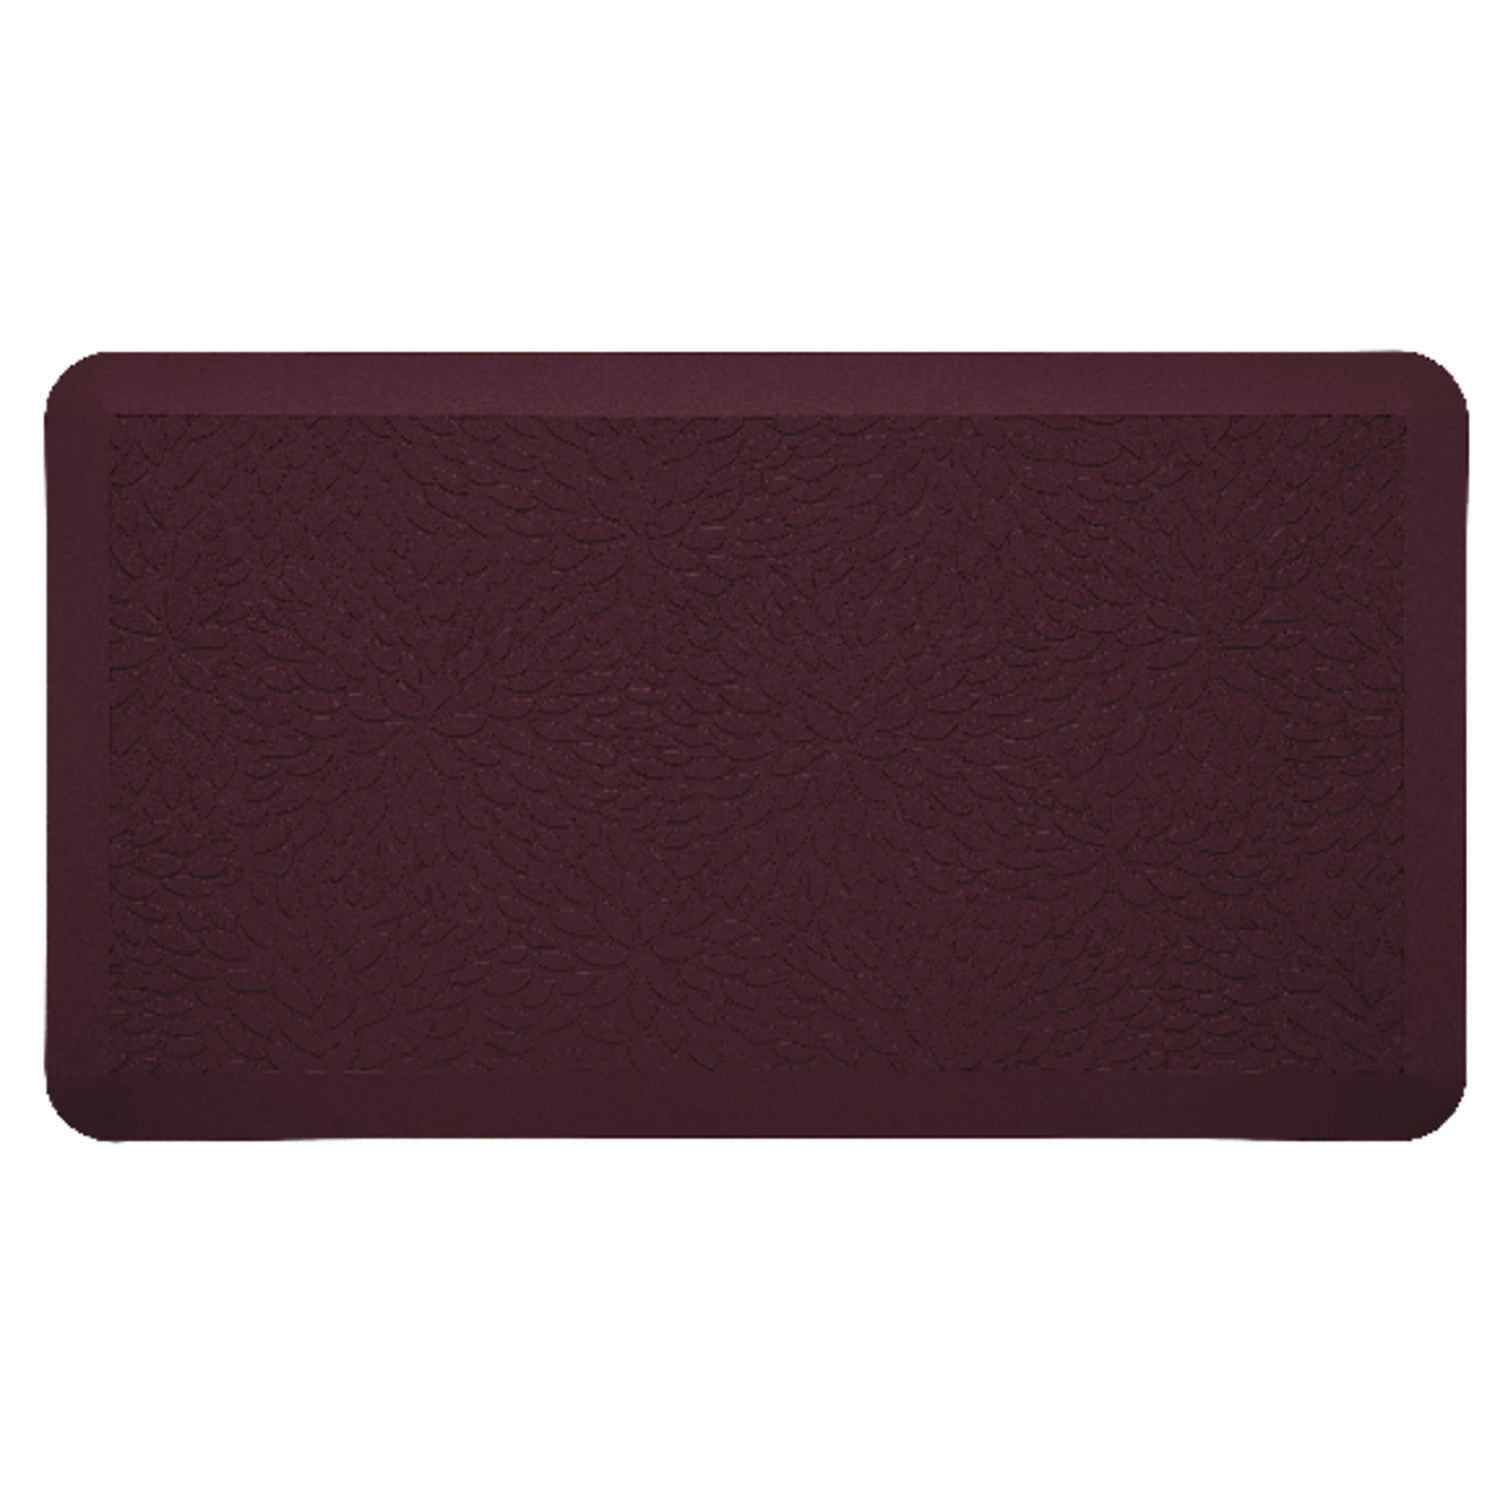 Comfort Co.  Brown  Polyurethane  Nonslip Anti Fatigue Mat  30 in. L x 18 in. W